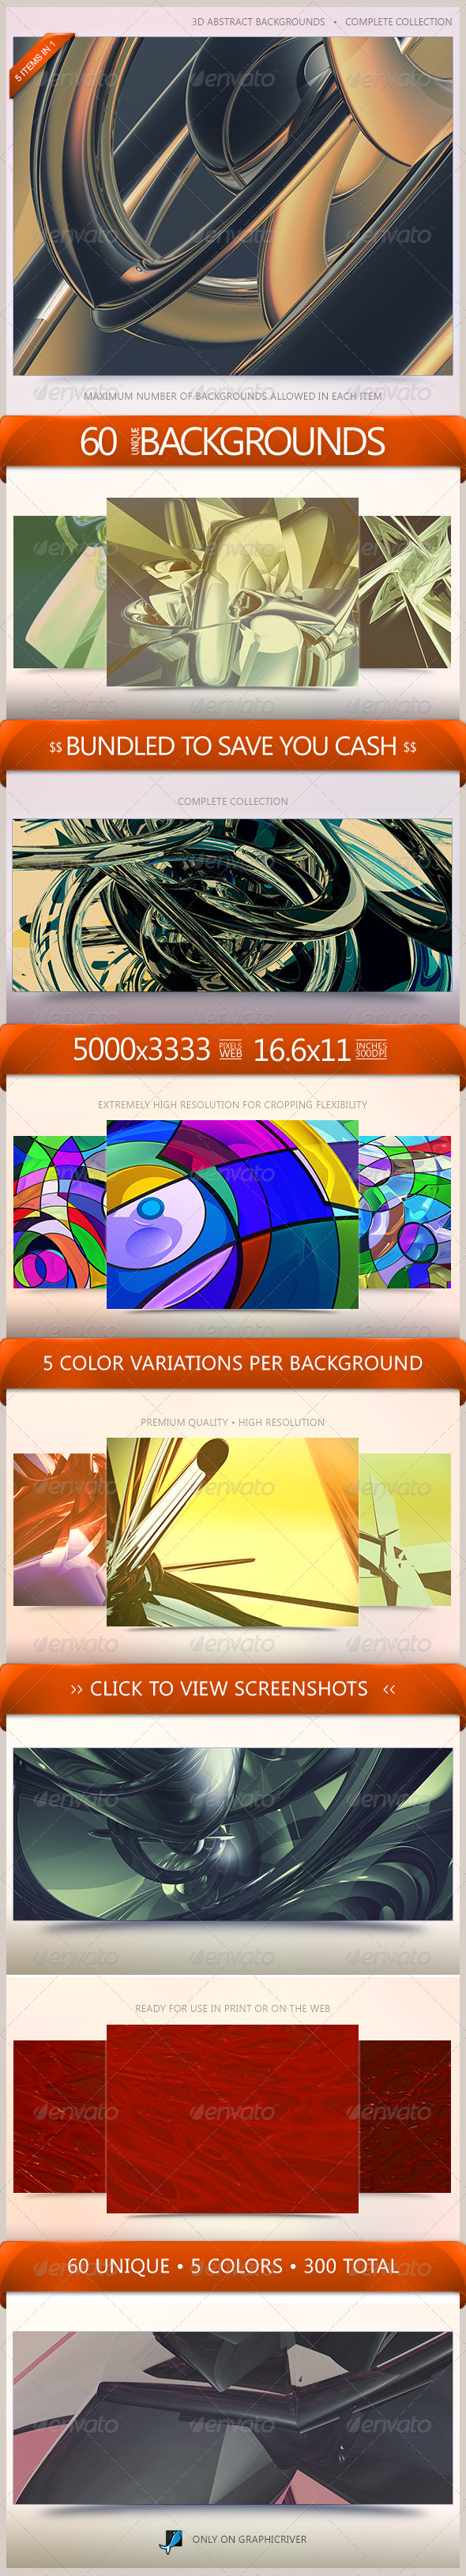 3D Abstract Backgrounds Bundle - 3D Backgrounds